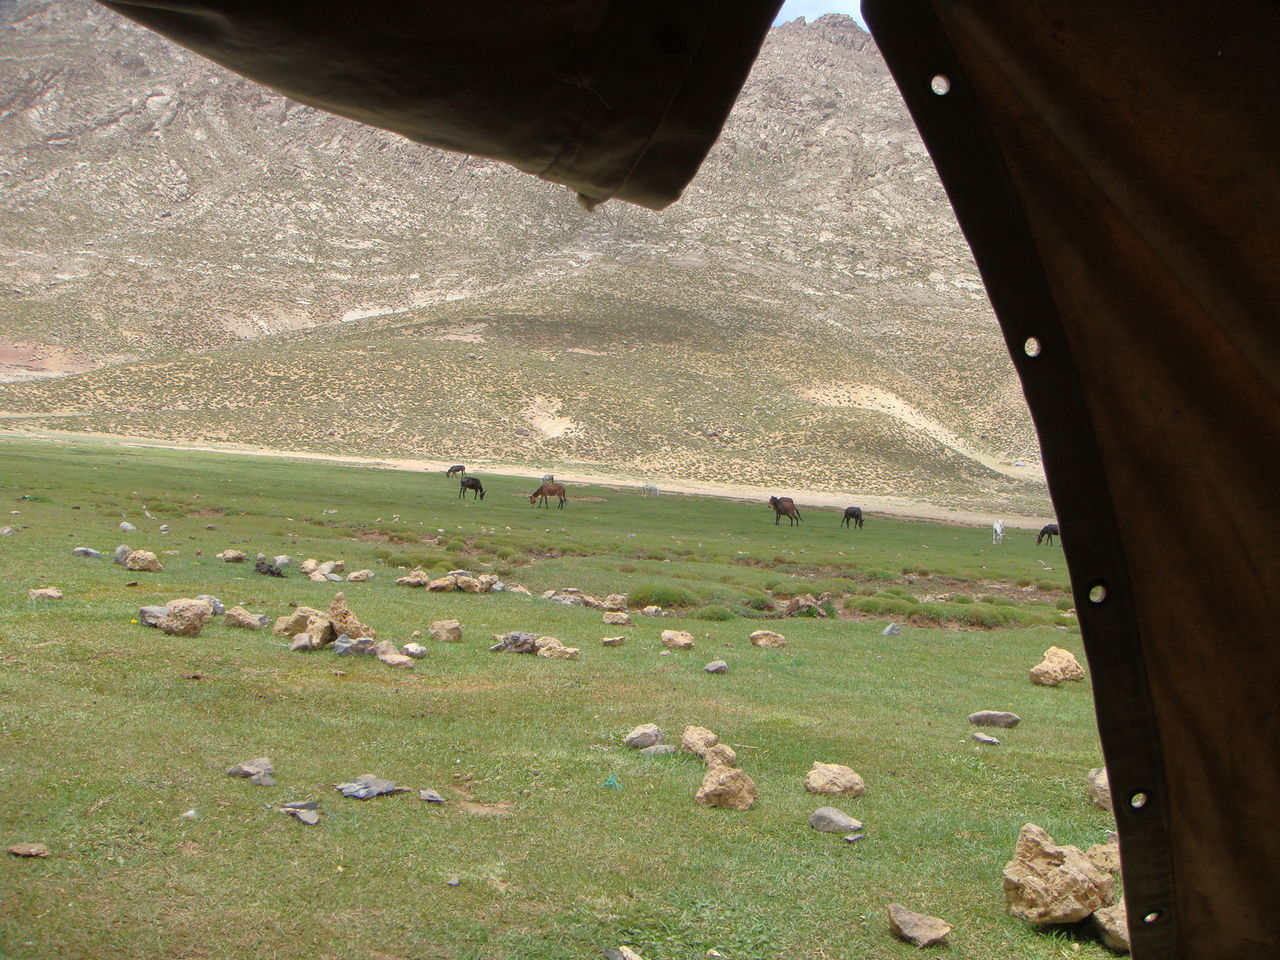 Atlasmountains Day Free Horses Grass Green Color Horses Maroc ❤️ Mountain Nature Outdoors View Of Inside A Tent